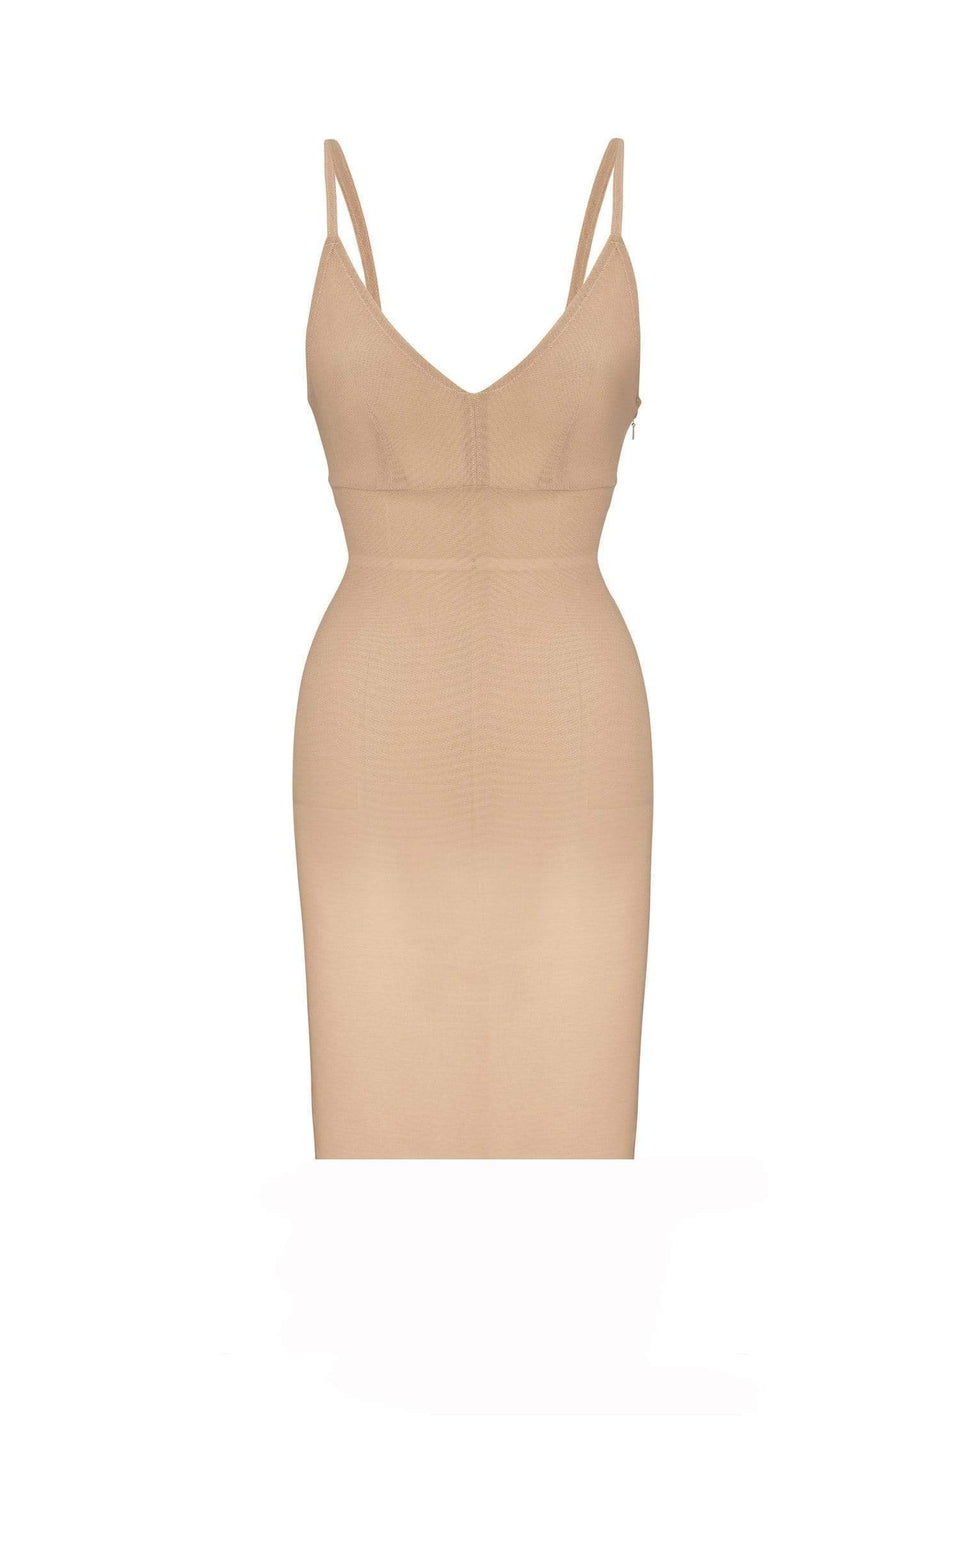 Powermesh Mini Dress In Flesh from Roland Mouret